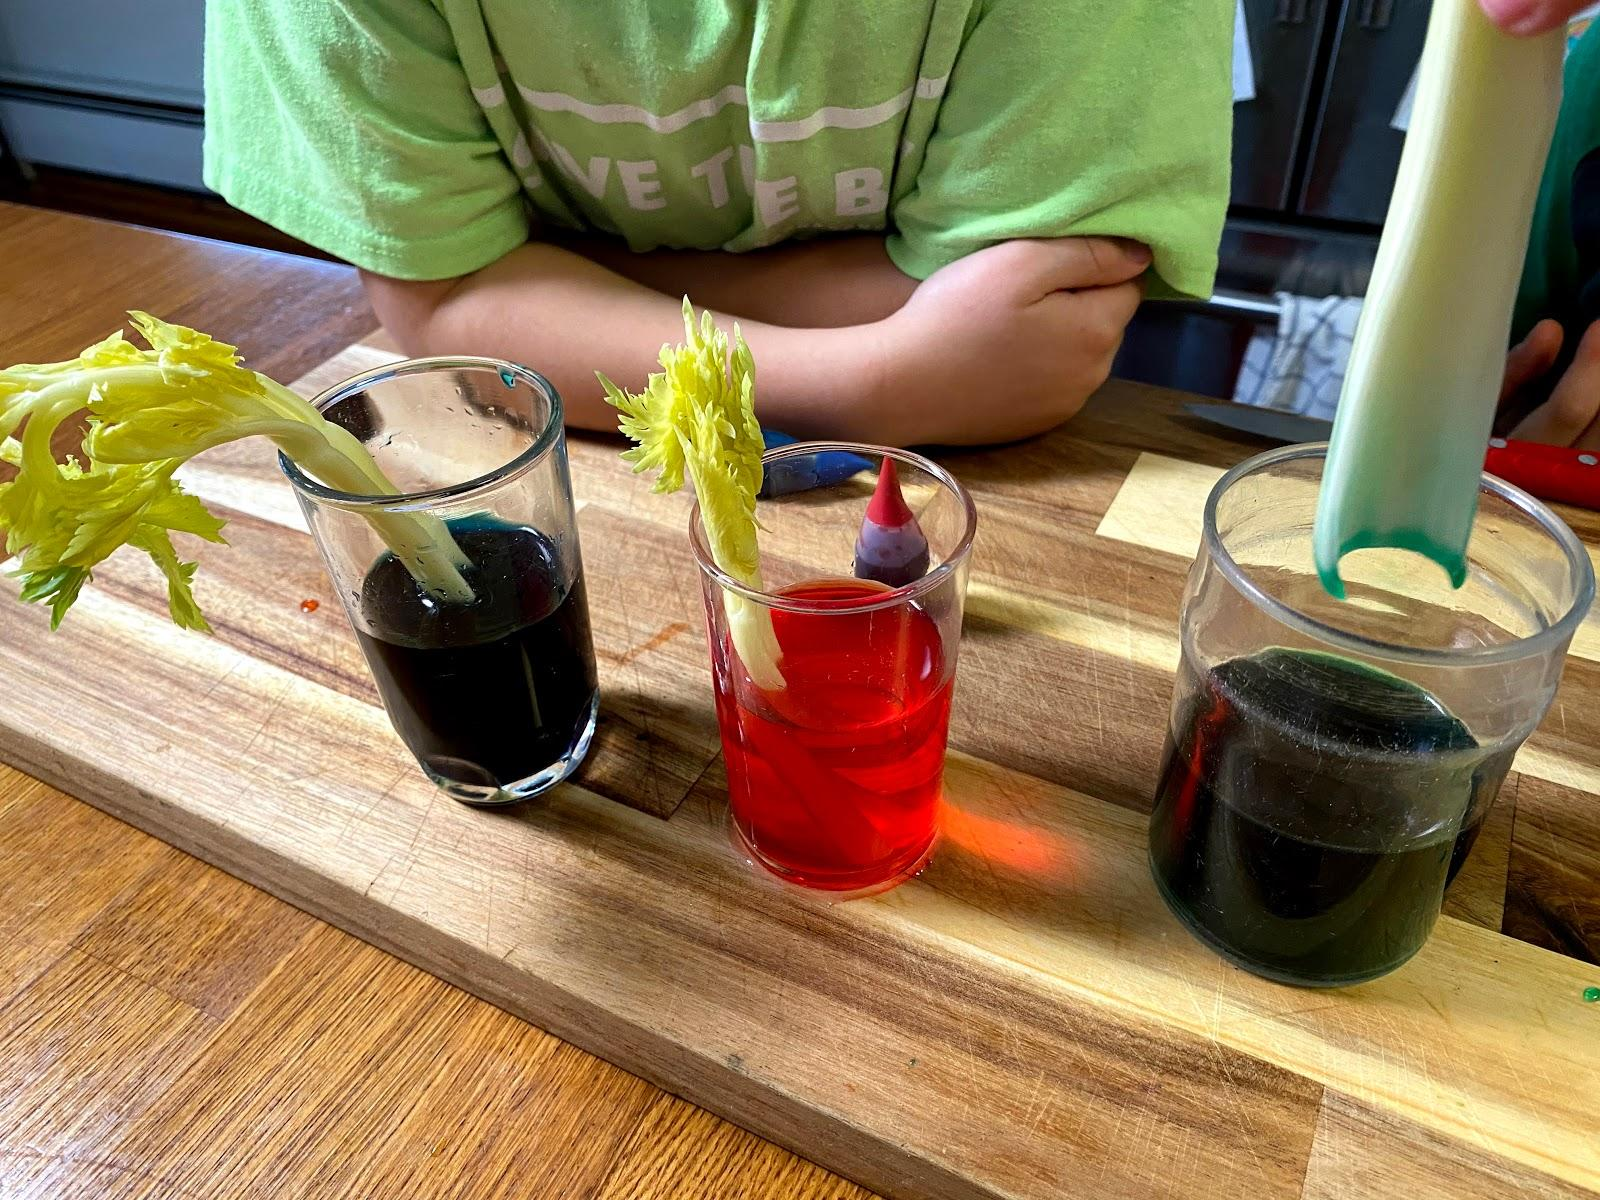 Placing a stalk of celery into water dyed with green food coloring.